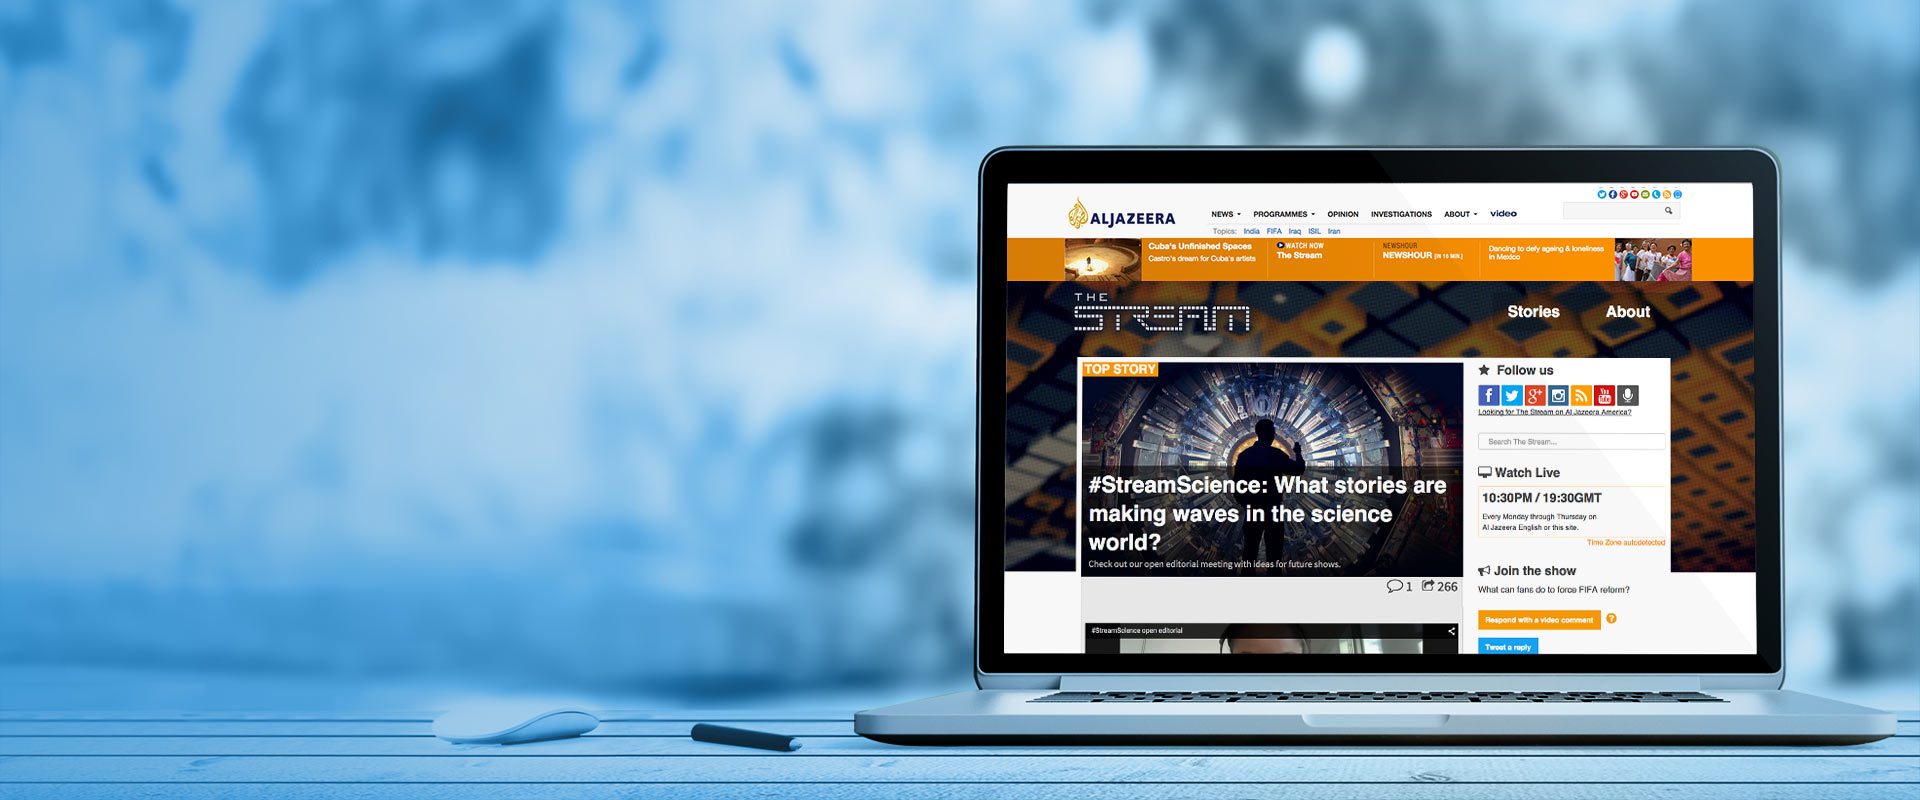 The Stream: New website for Al Jazeera built with Drupal